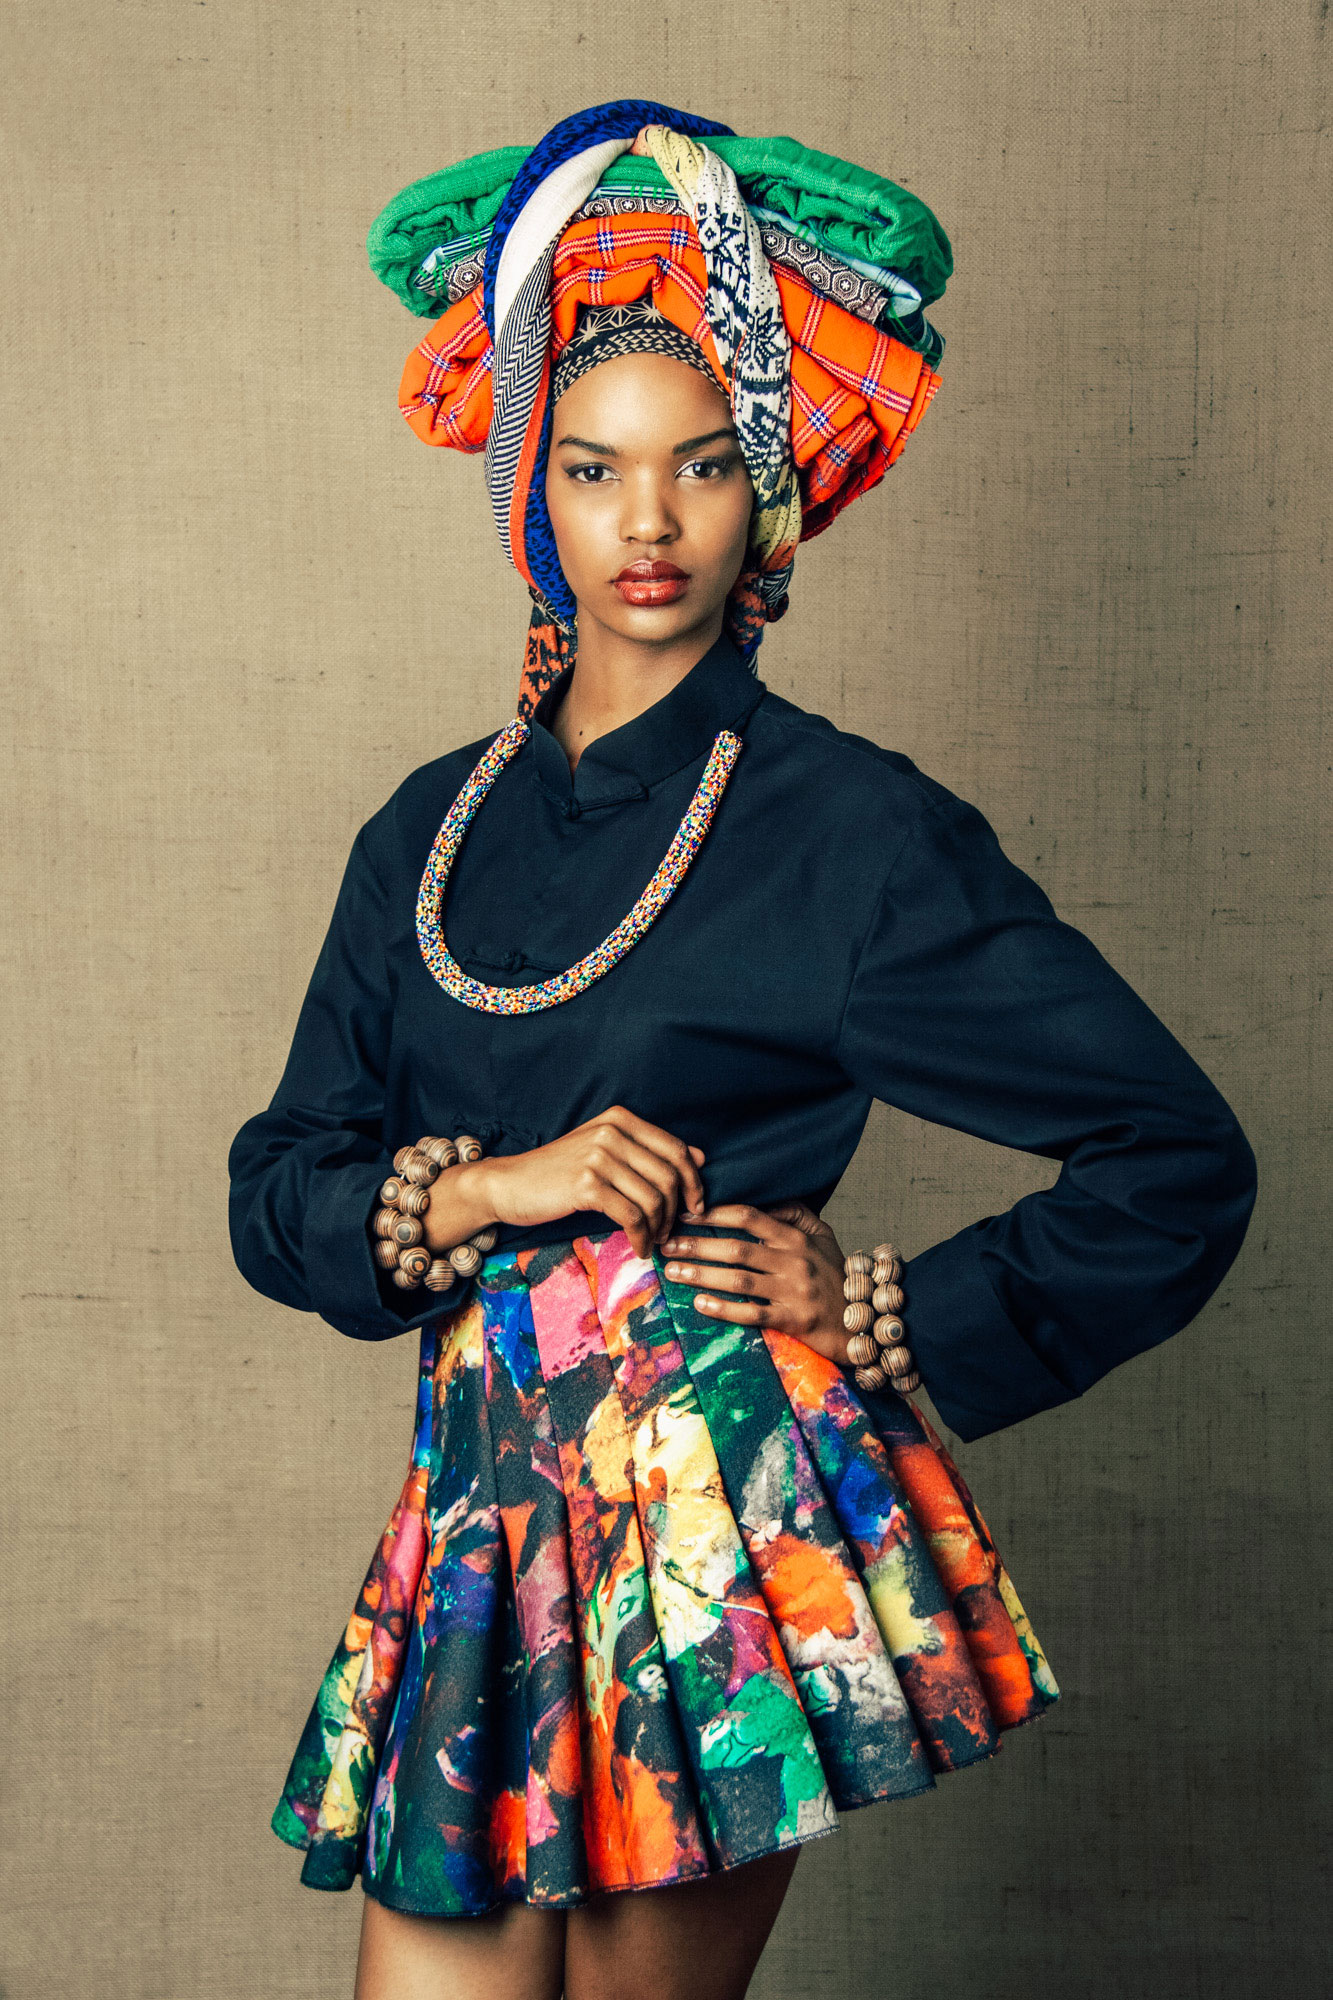 The Modern African Turban The Latest Style Trends To Know